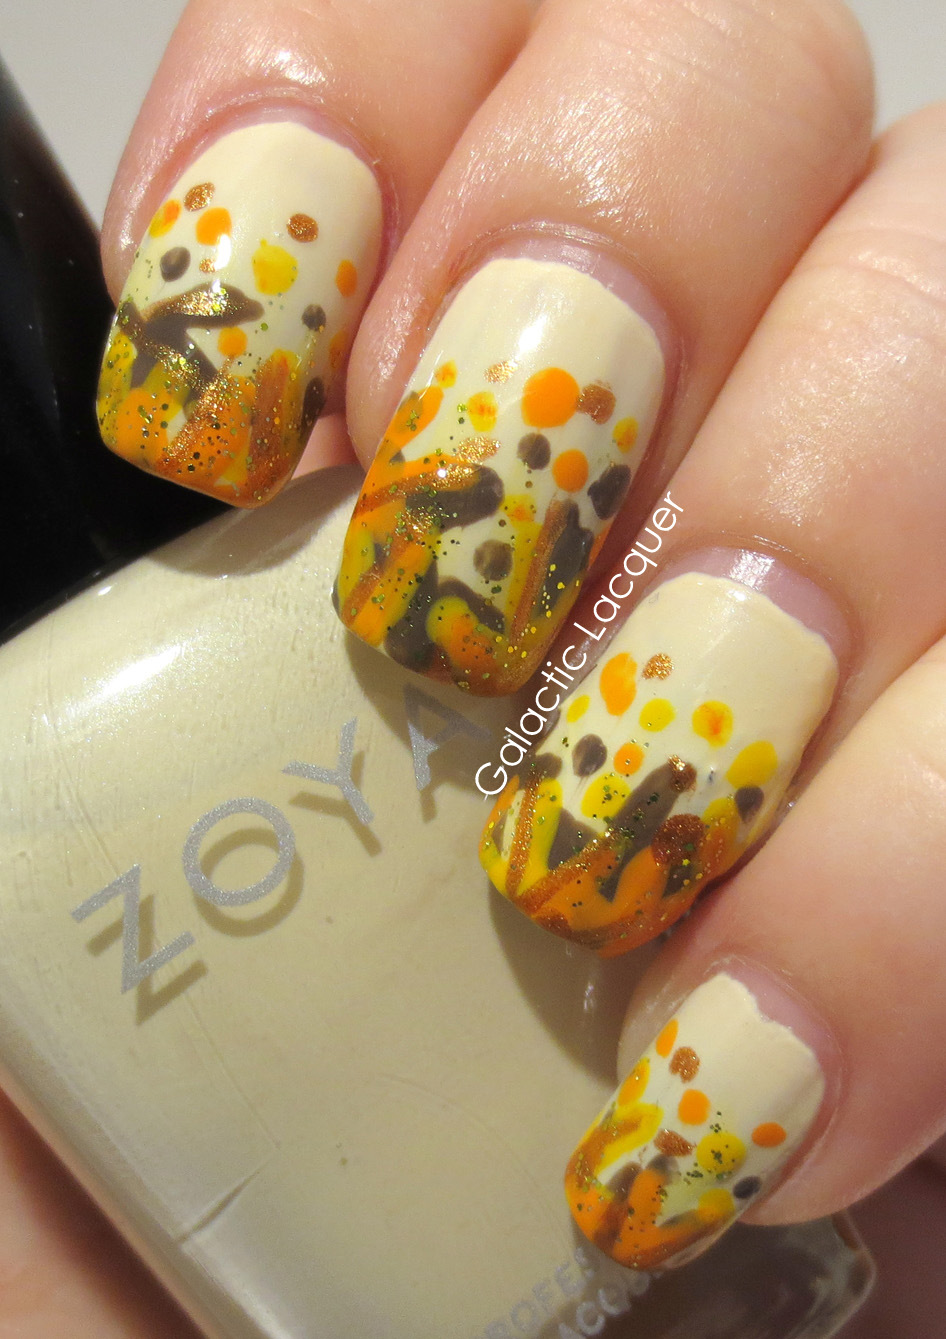 Galactic Lacquer: Falling Forward Nail Art Challenge - Leaves